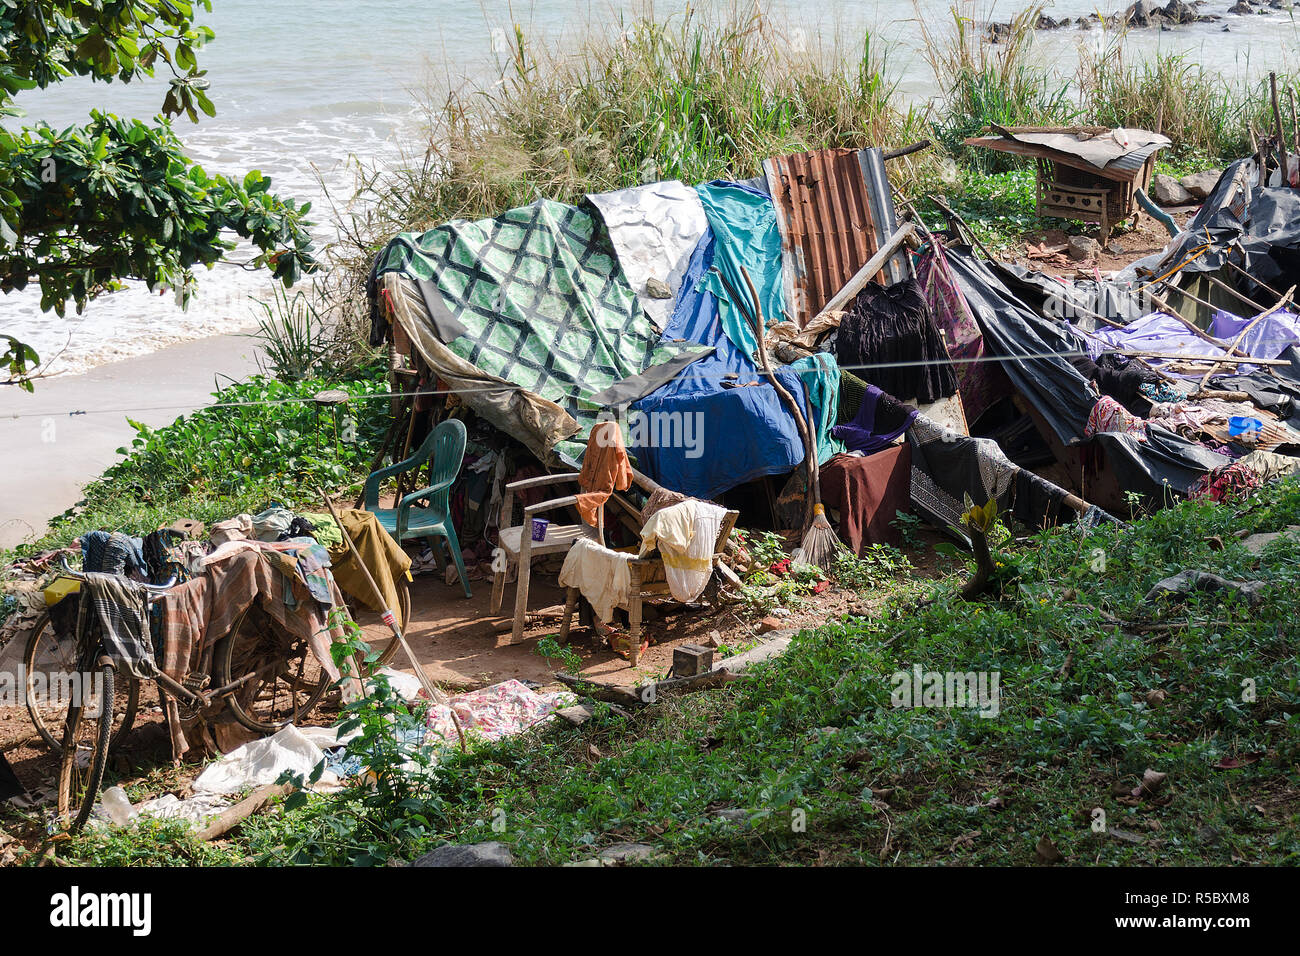 Place to stay and for life of homeless people, near sea beach. Concept of poverty and deprivation, social problems with housing shortage. - Stock Image